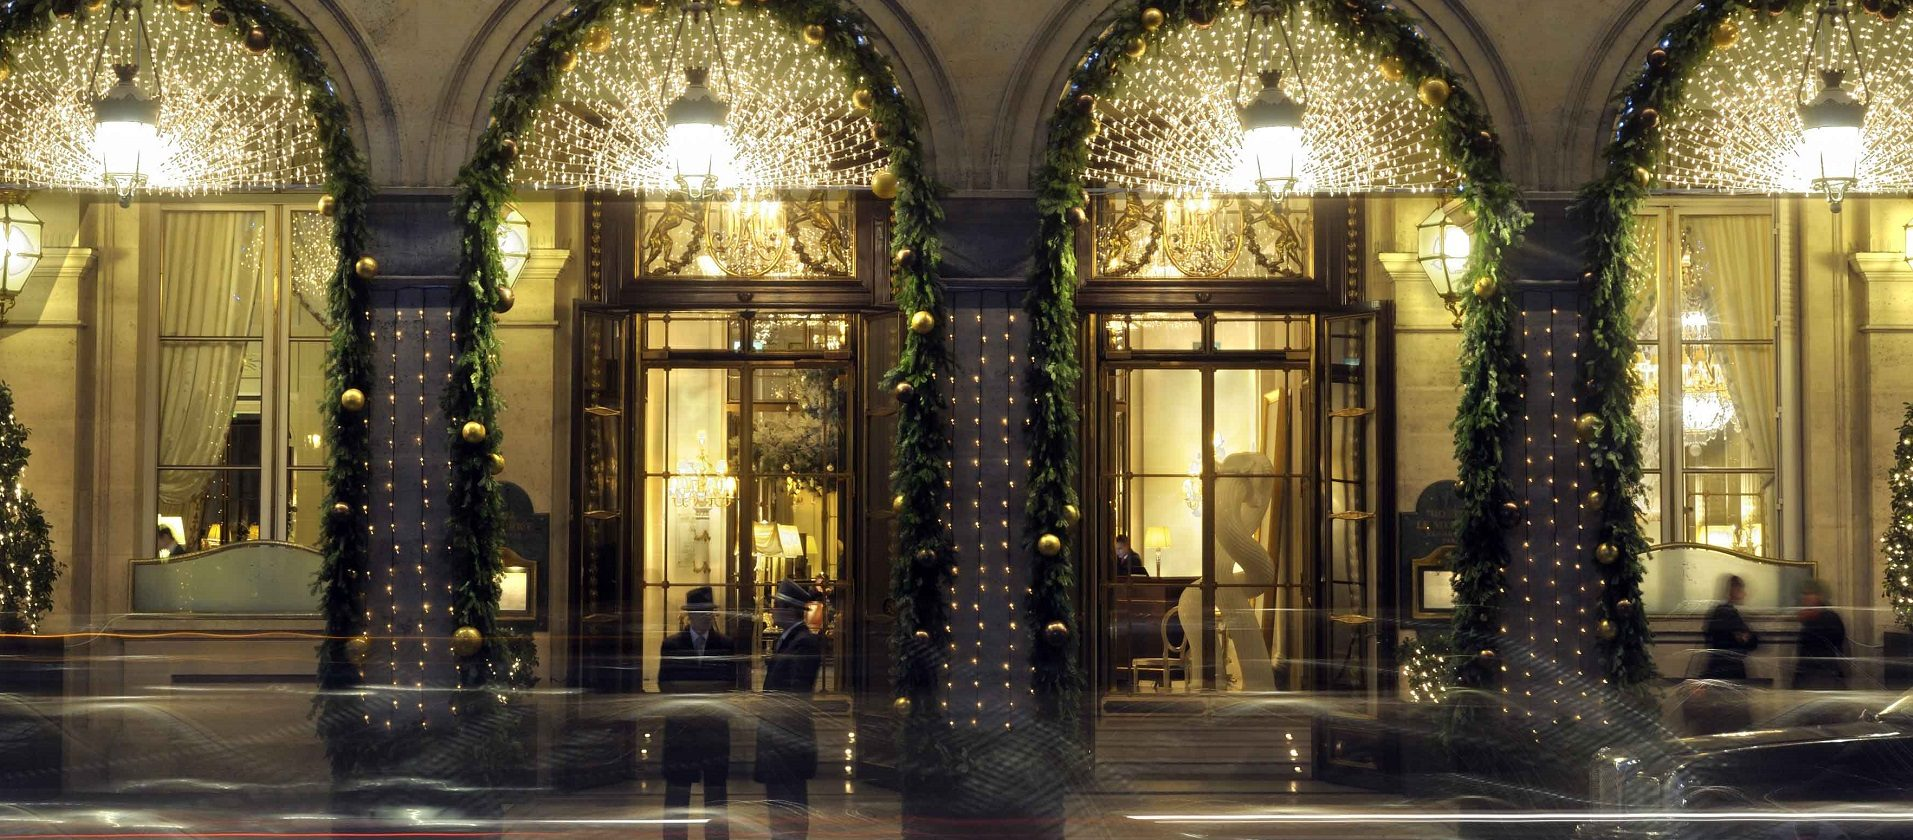 Le Meurice hotel in Paris with festive decorations